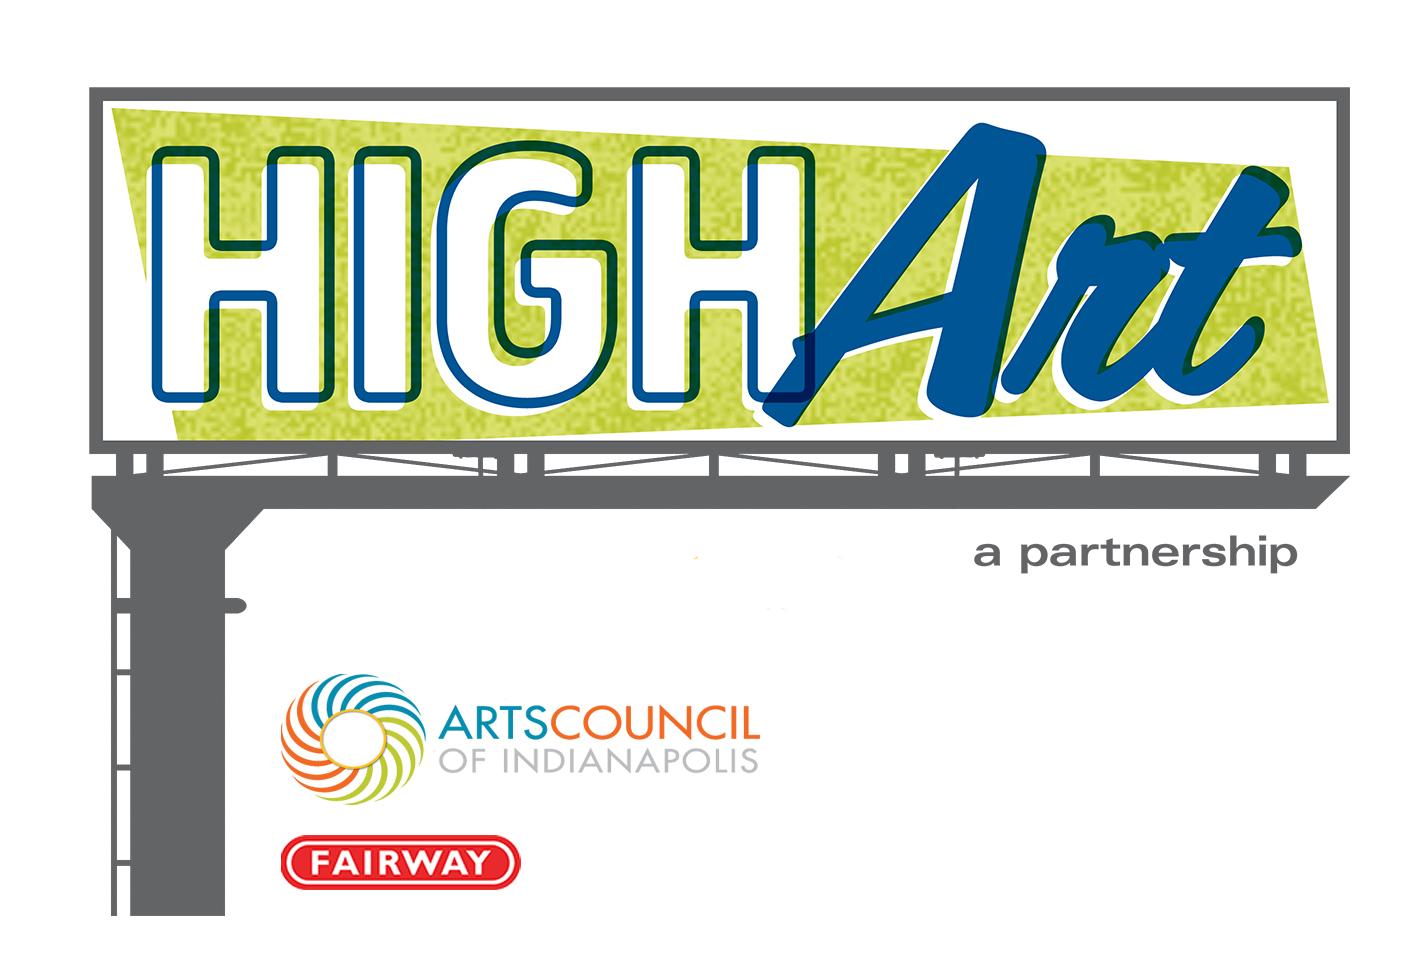 2017 High Art Logo